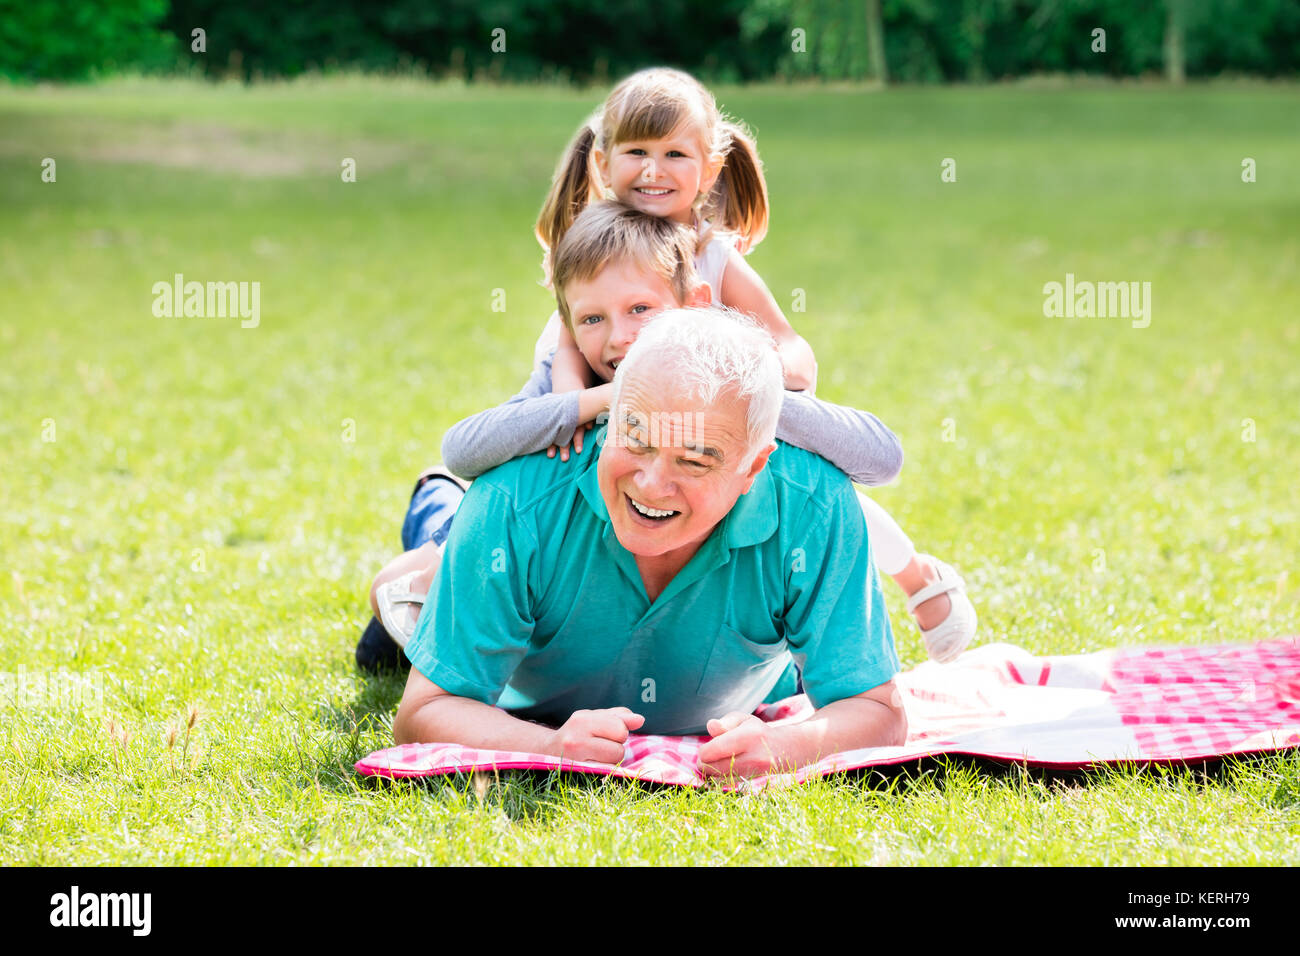 Portrait Of Happy Family Having Fun Lying On Green Grass Together In Park - Stock Image